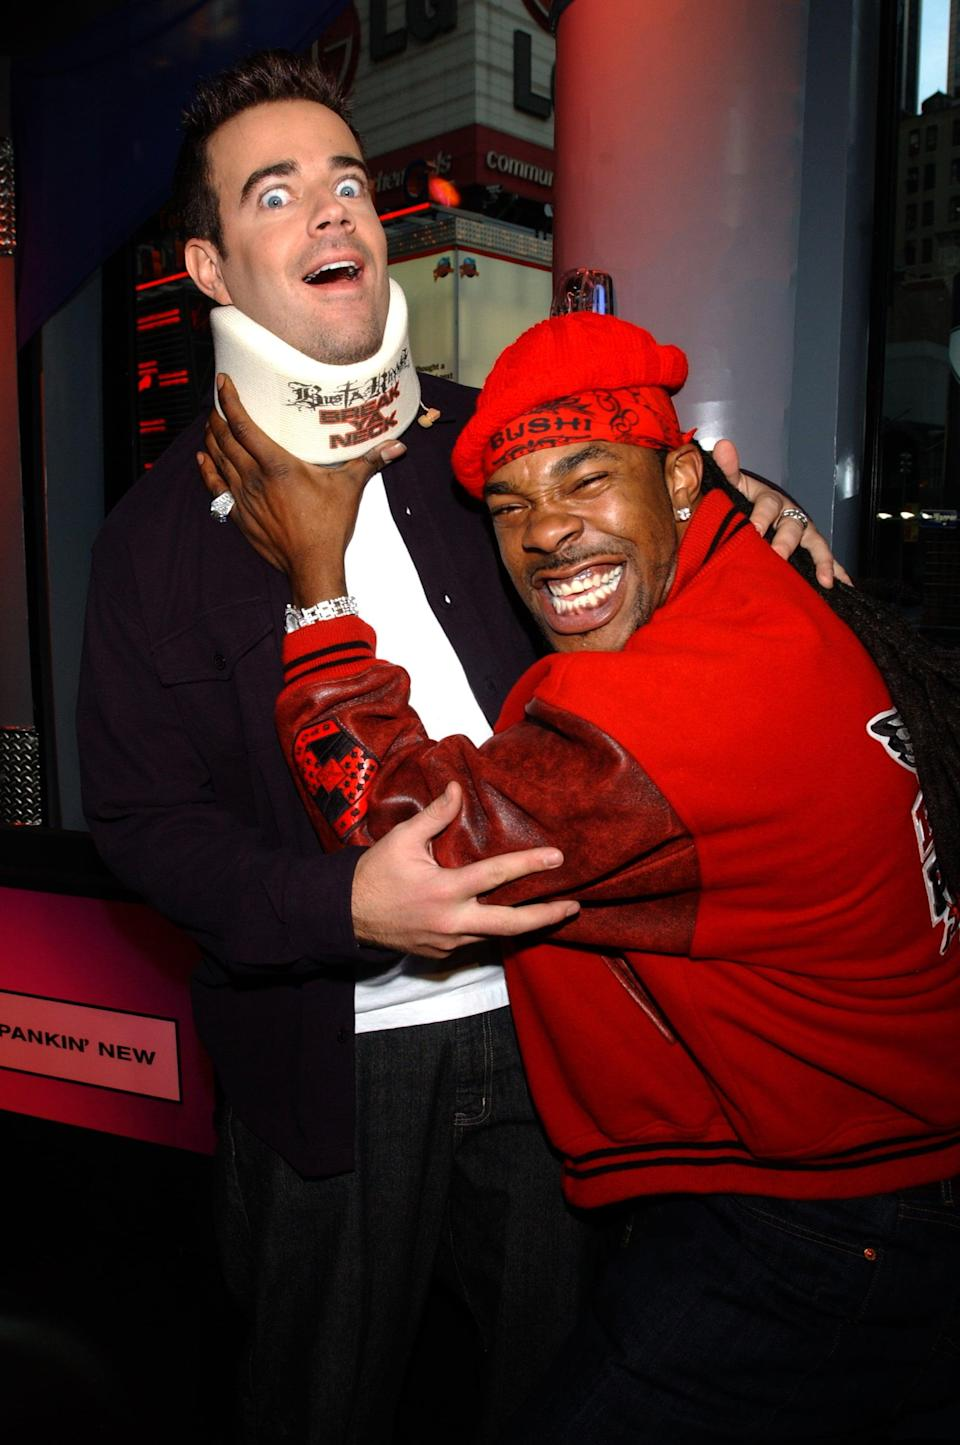 <p>Busta Rhymes goofed off with Carson Daly when he visited <b>TRL</b> in 2001.</p>